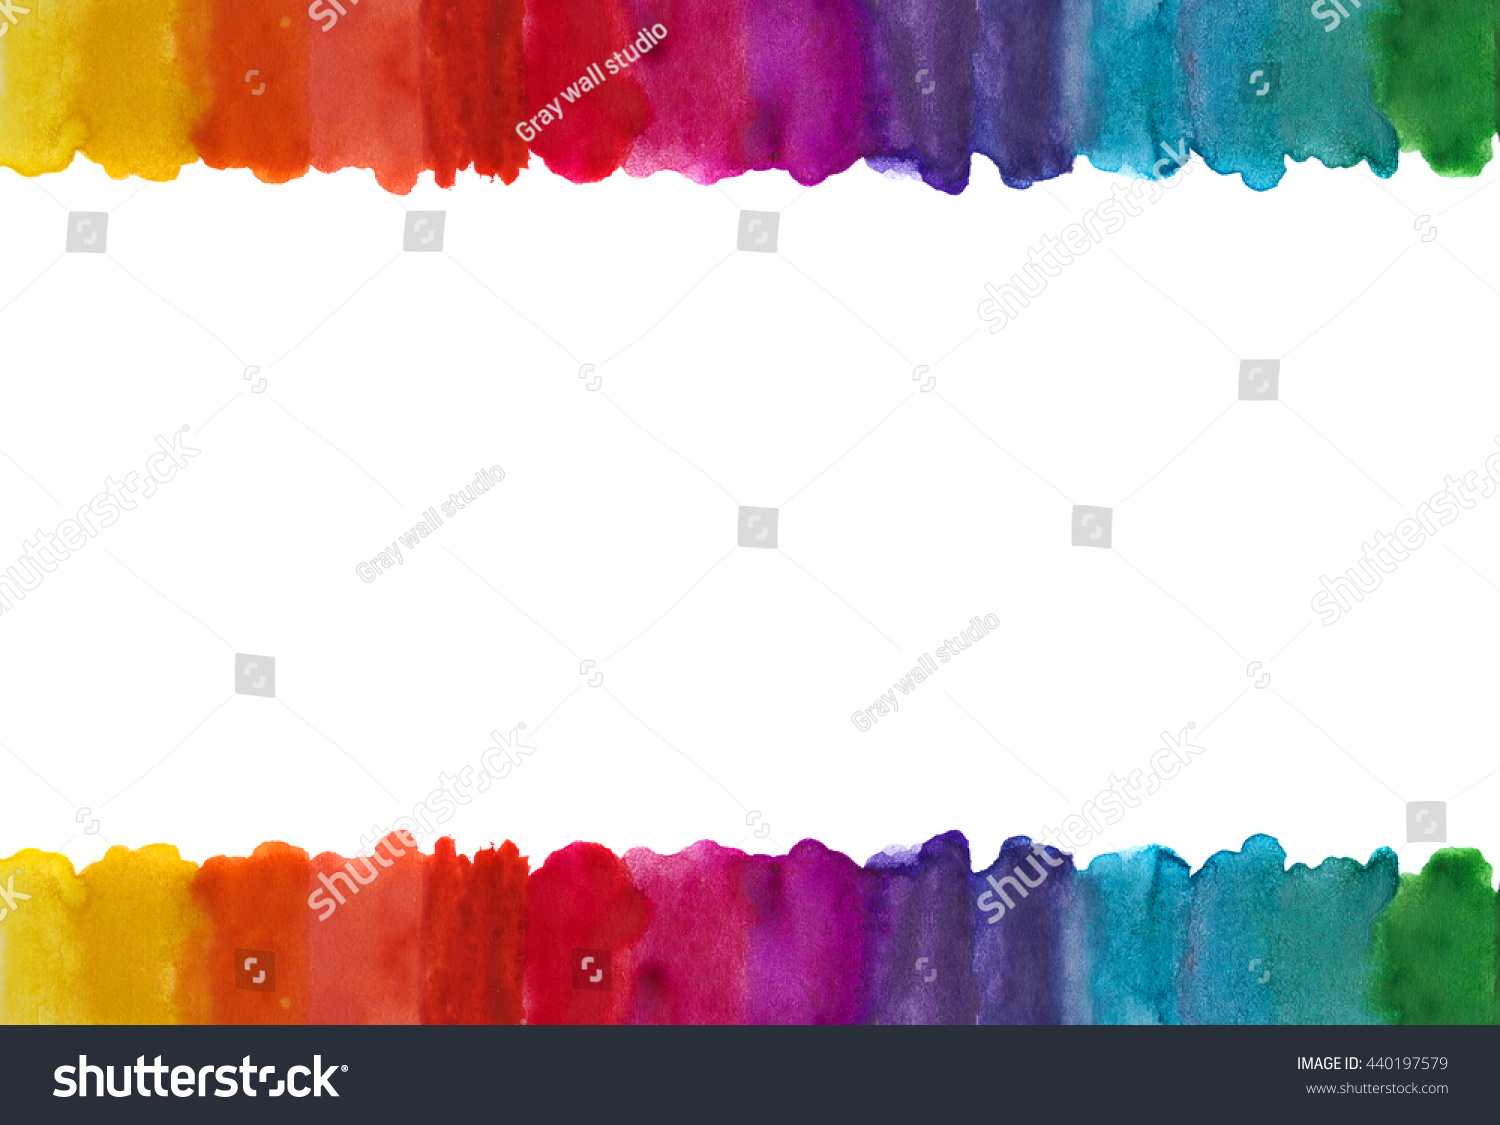 Colored Water Brush Watercolor Lines Frame Brush Draws Colored Stock Illustration